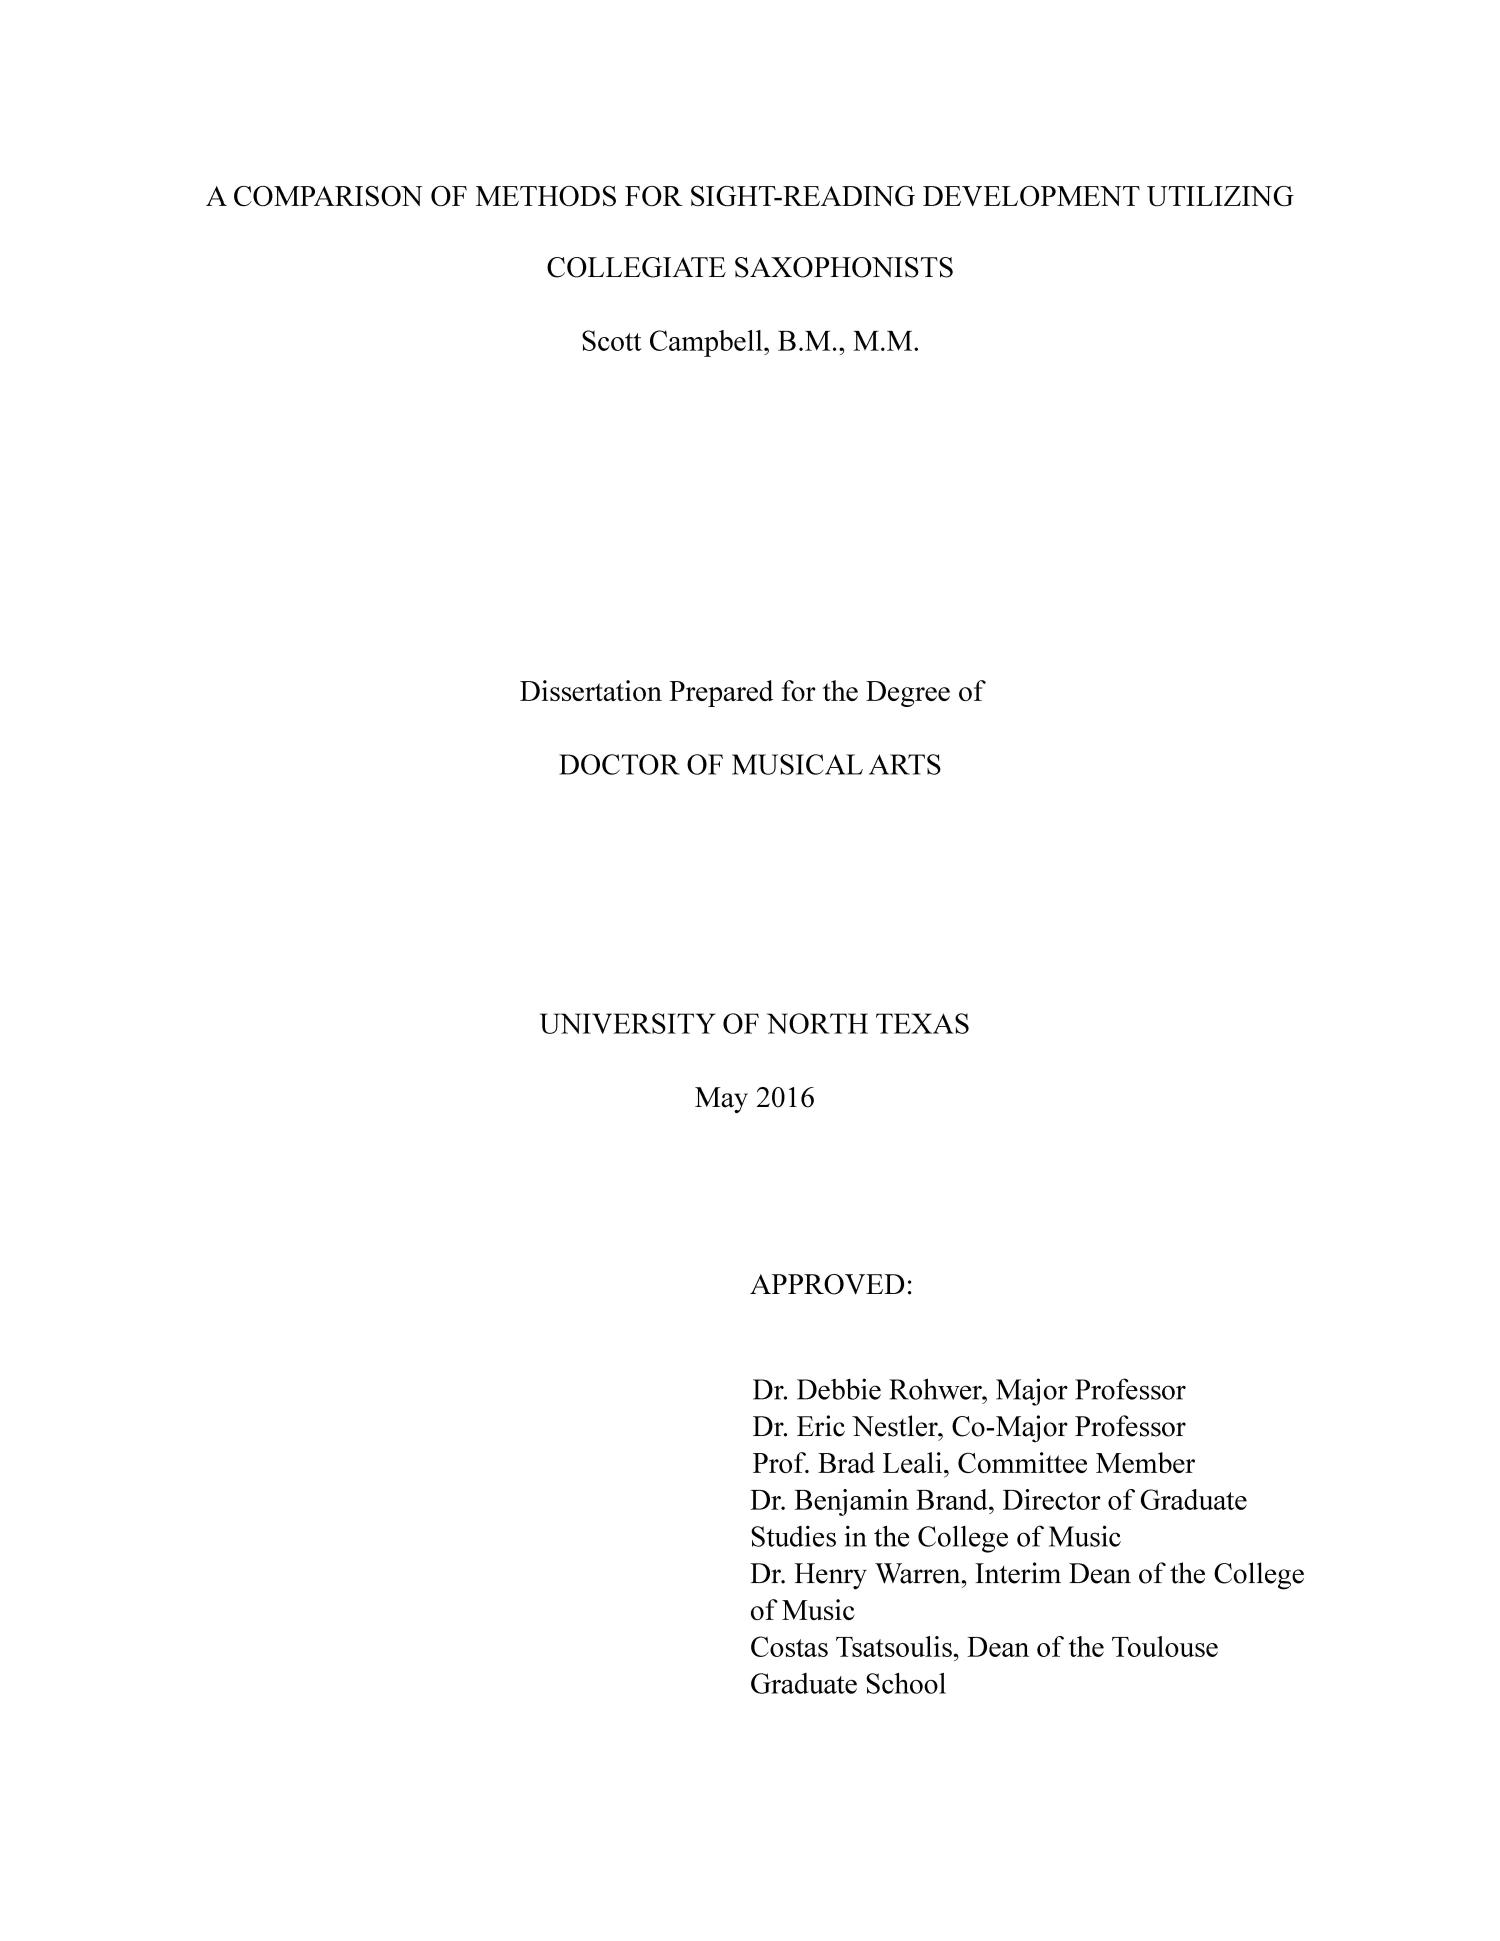 A Comparison of Methods for Sight-Reading Utilizing Collegiate Saxophonists                                                                                                      Title Page